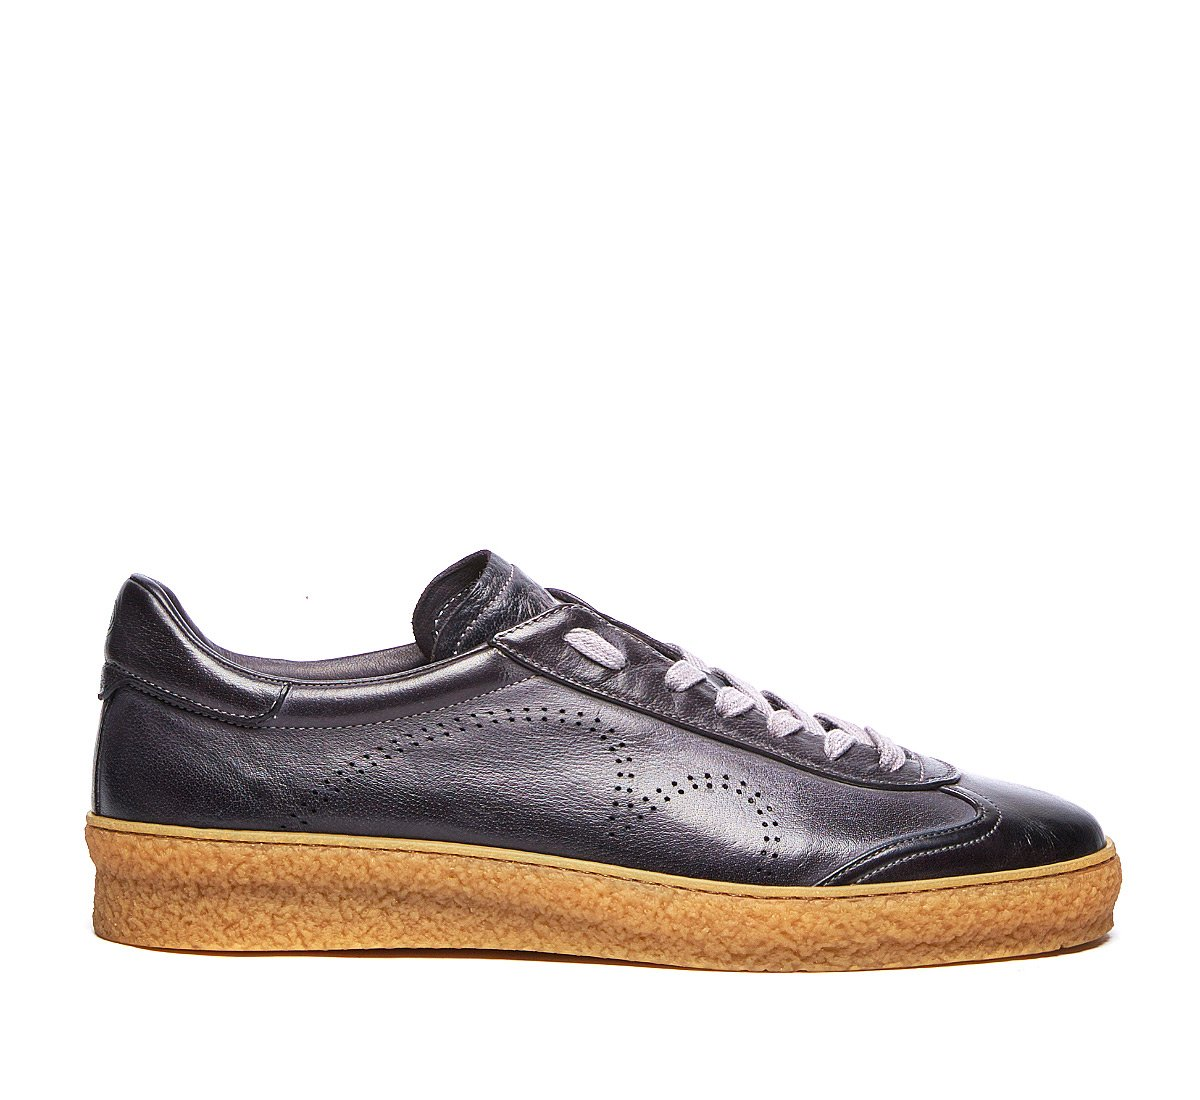 GUGA Barracuda sneakers